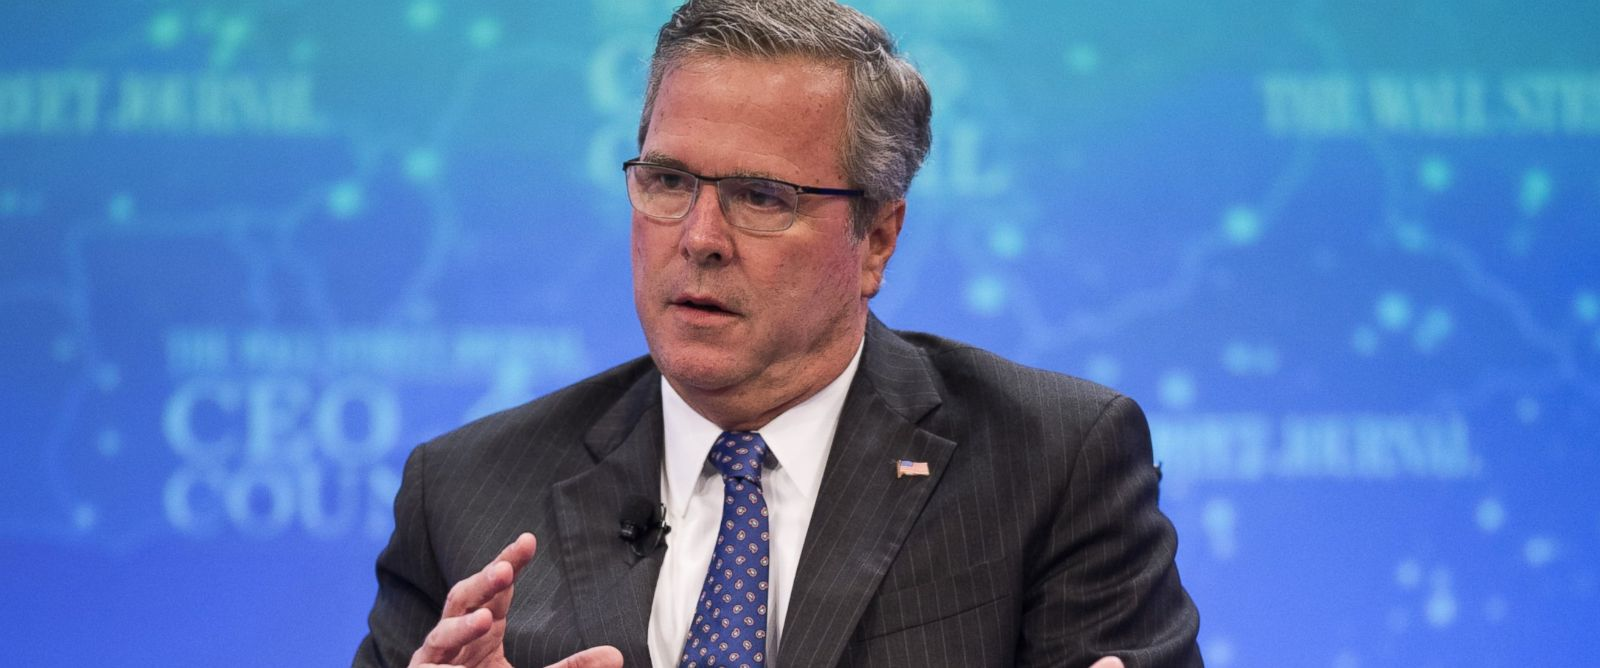 PHOTO: Former Florida Governor Jeb Bush speaks during the Wall Street Journal CEO Council in Washington, D.C. on Dec. 1, 2014.